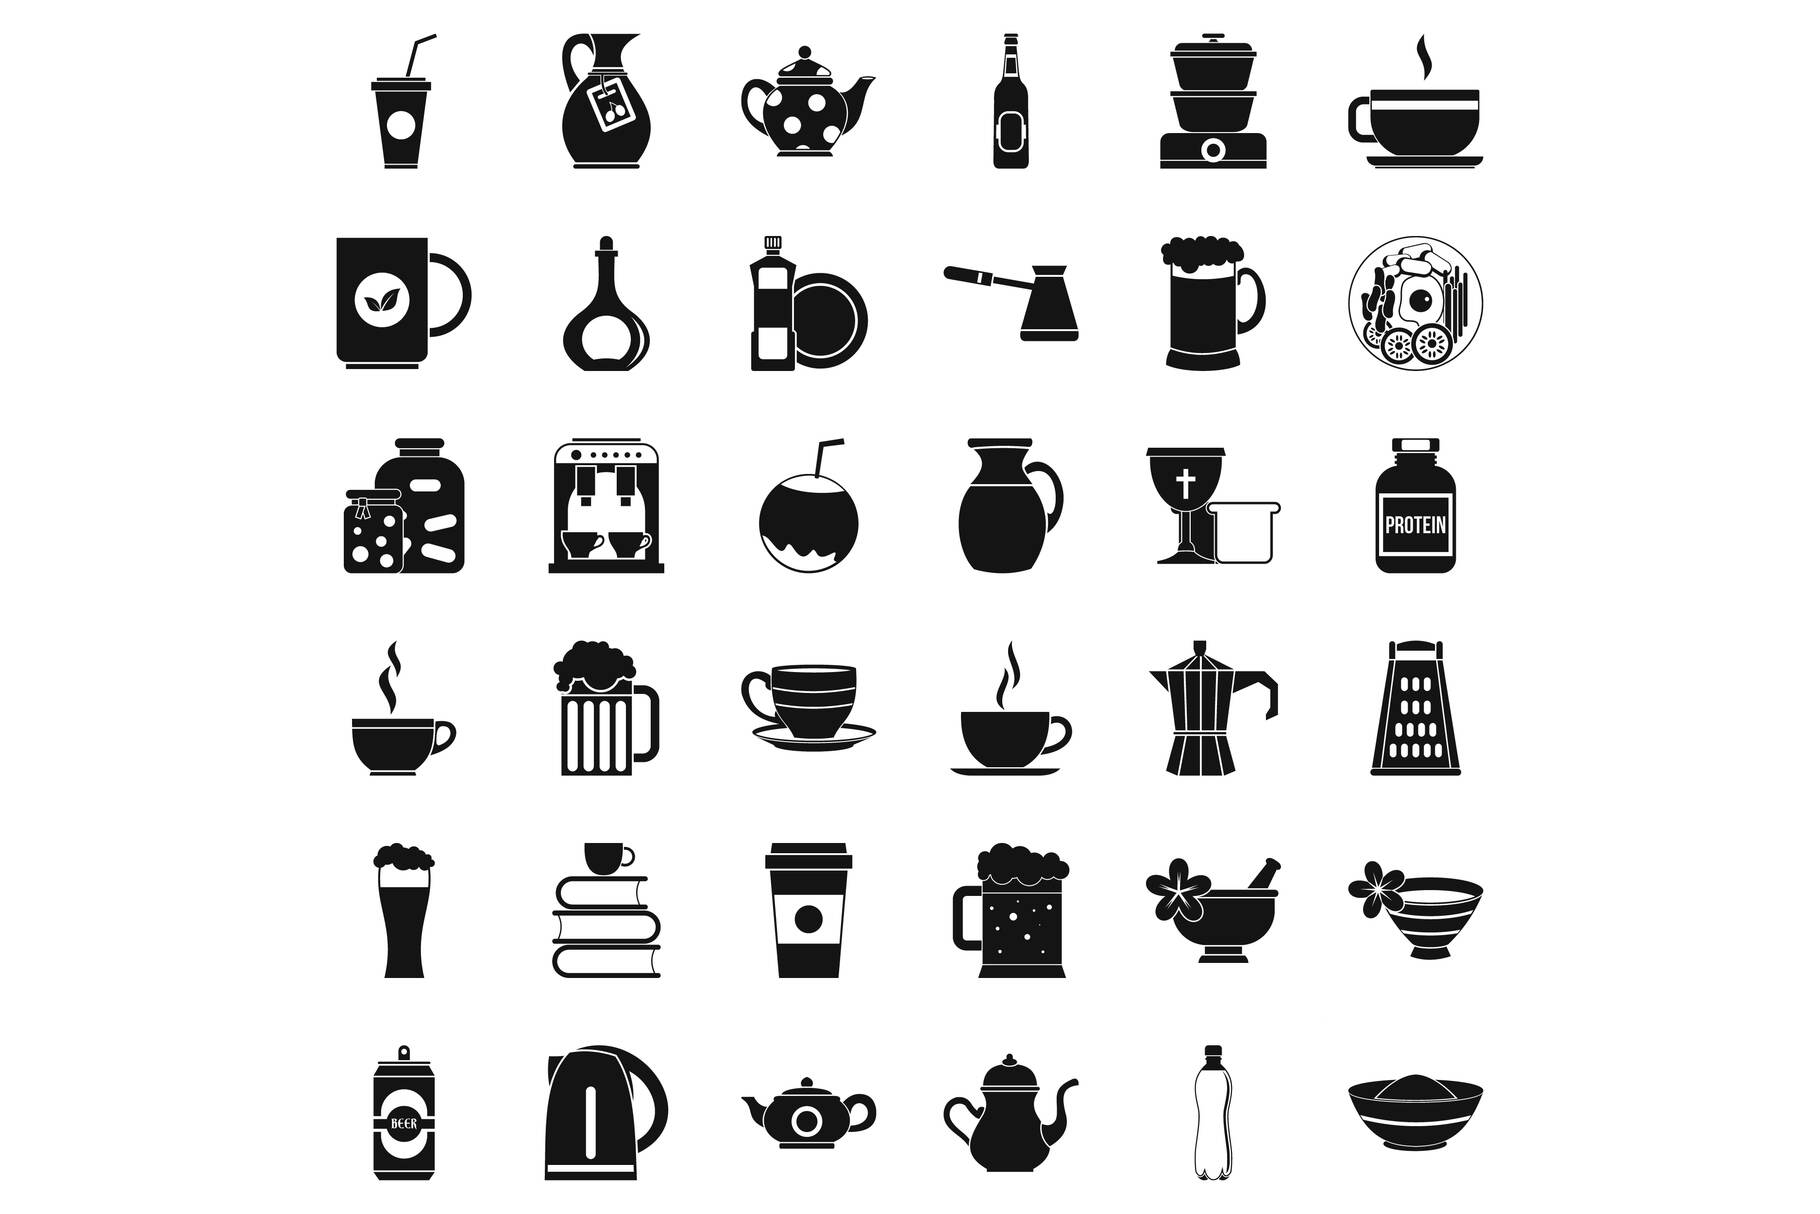 Dinnerware icons set, simple style example image 1